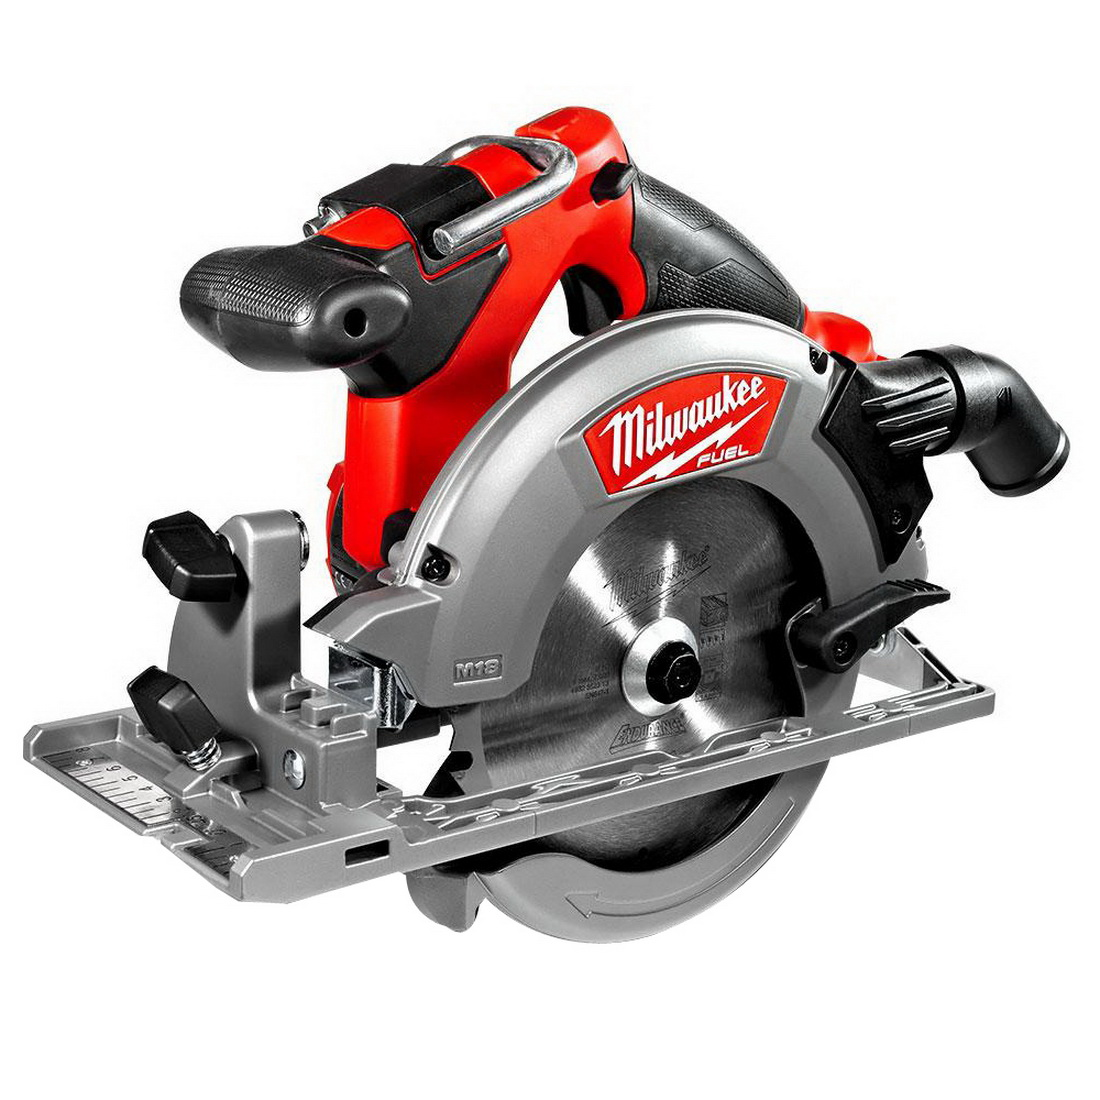 M18 Cordless Circular Saw 165mm